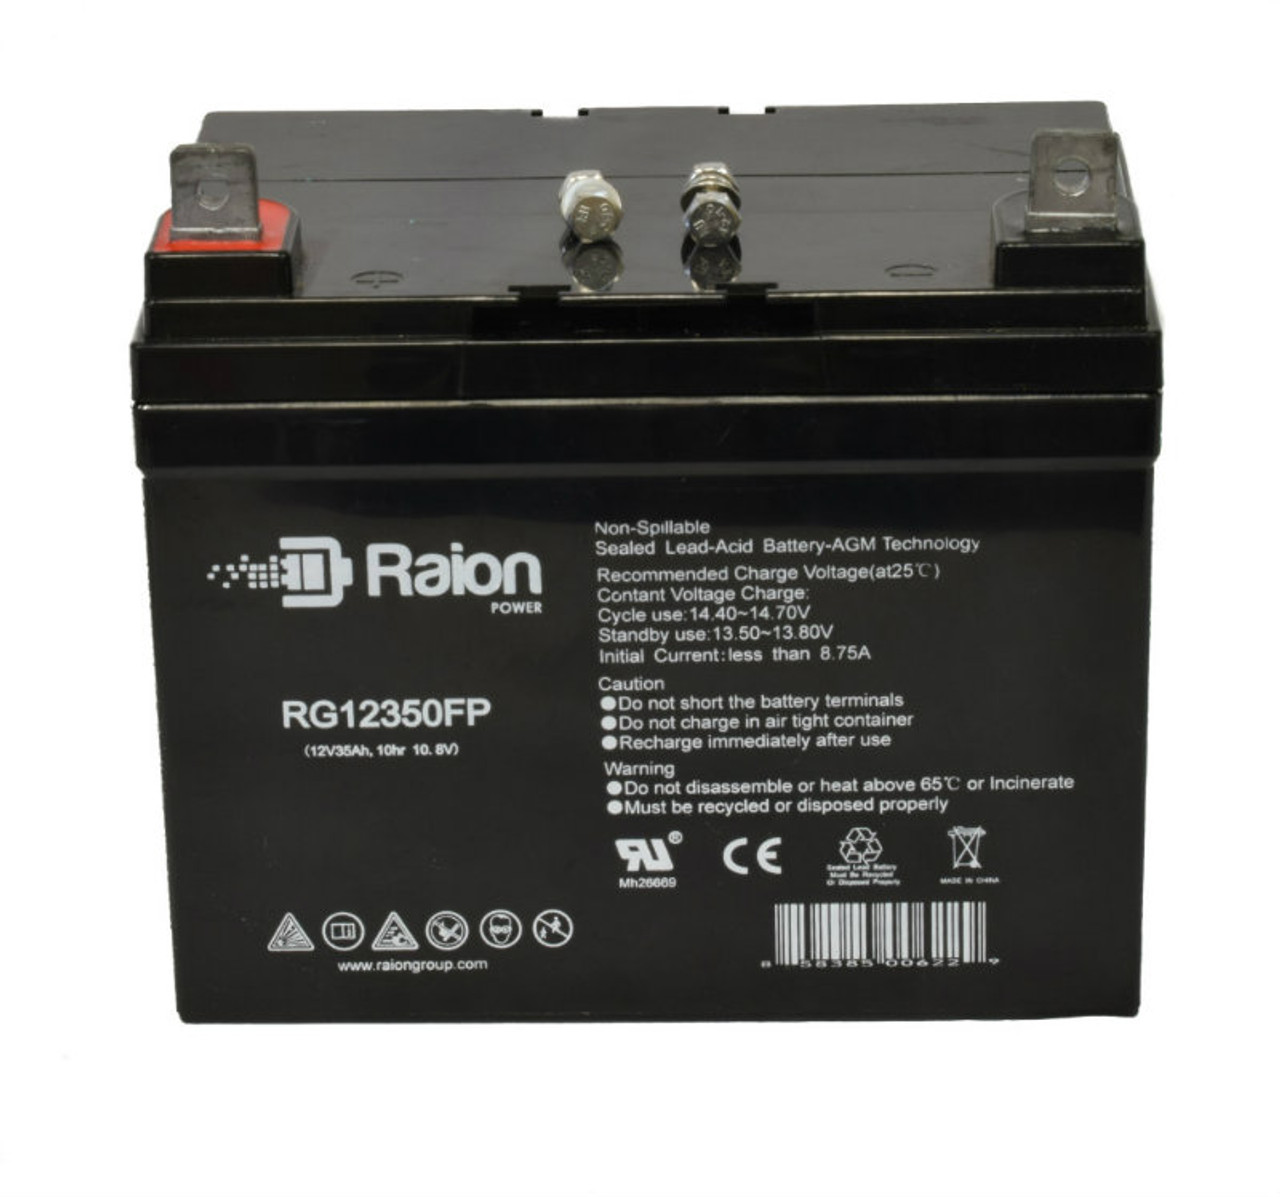 RG12350FP Sealed Lead Acid Battery Pack For Golden Technology Companion GC322 Mobility Scooter